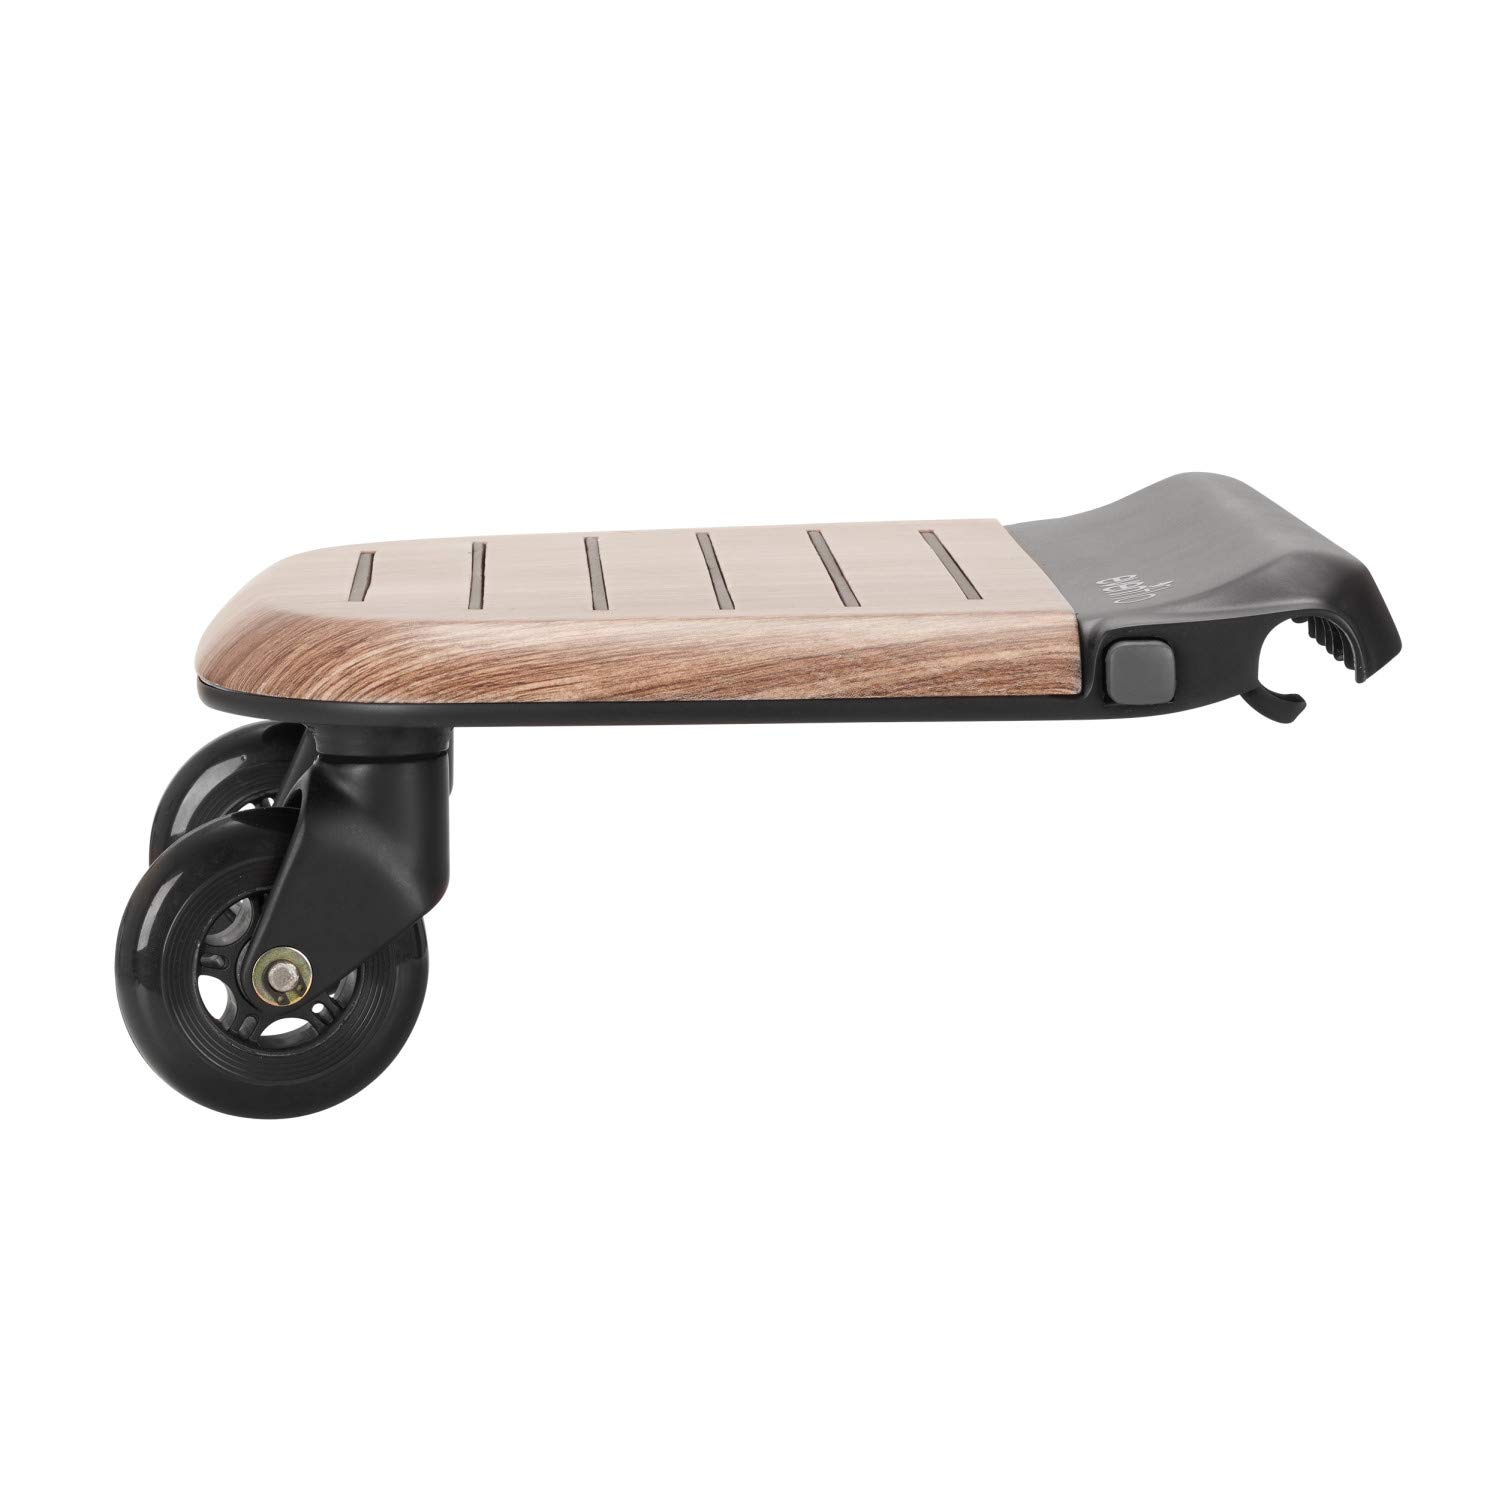 Evenflo Stroller Rider Board, Convenient Riding Options, Non-Skid Surface, Smooth-Ride Wheels, Easy to Use, Holds up to 50 Pounds, No Additional Parts Needed